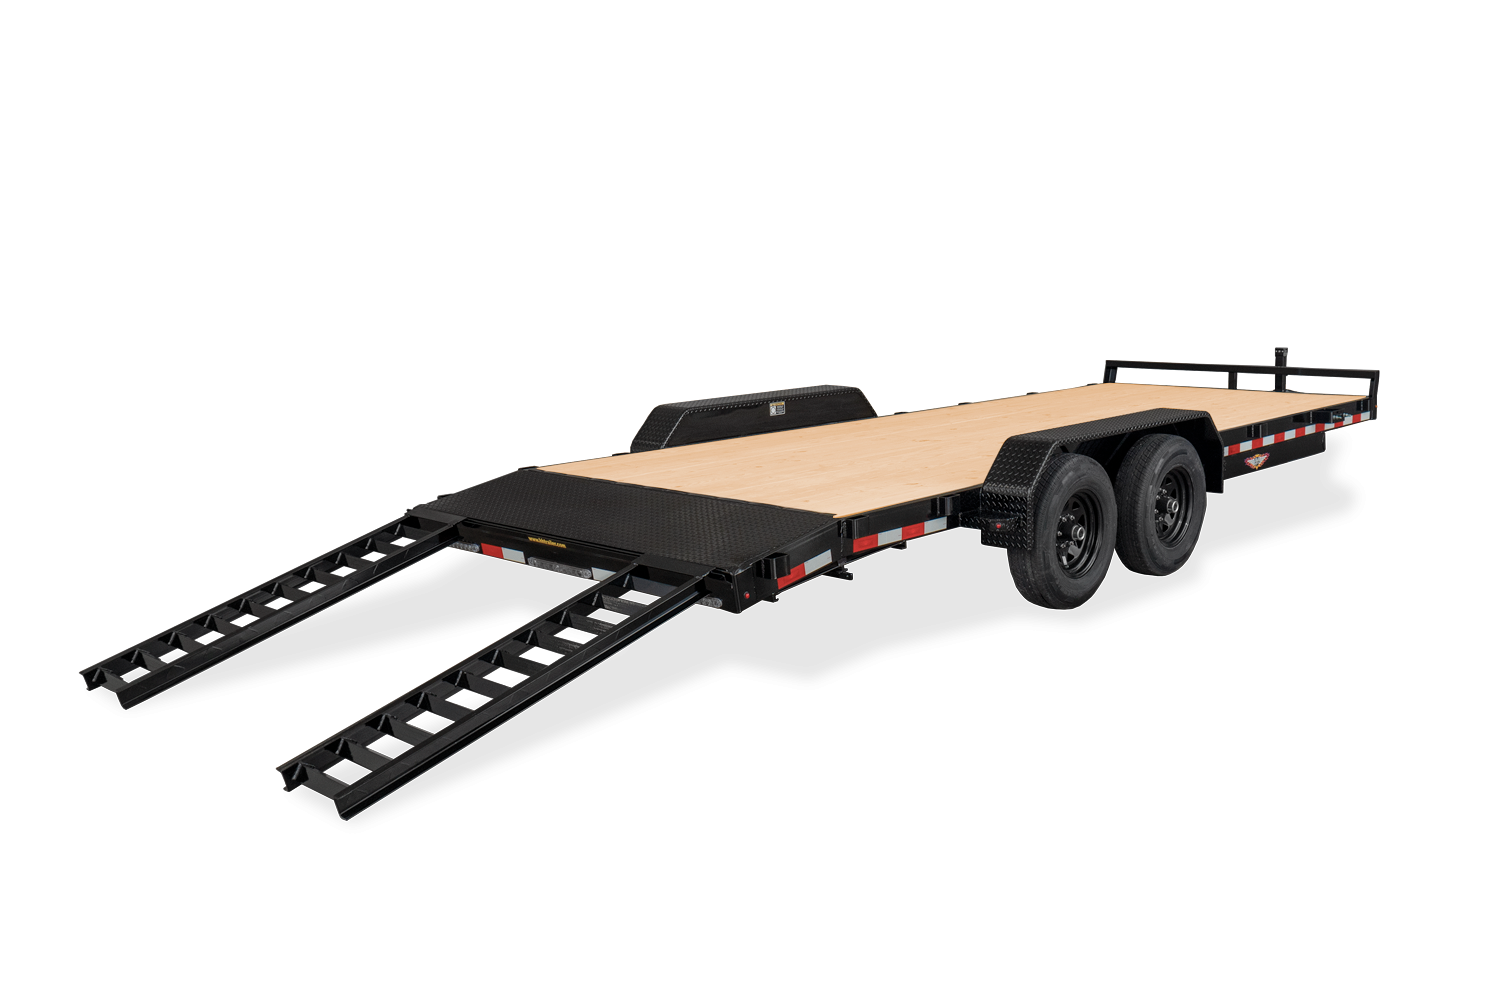 Rear View of the Heavy Duty Flatbed Car Hauler